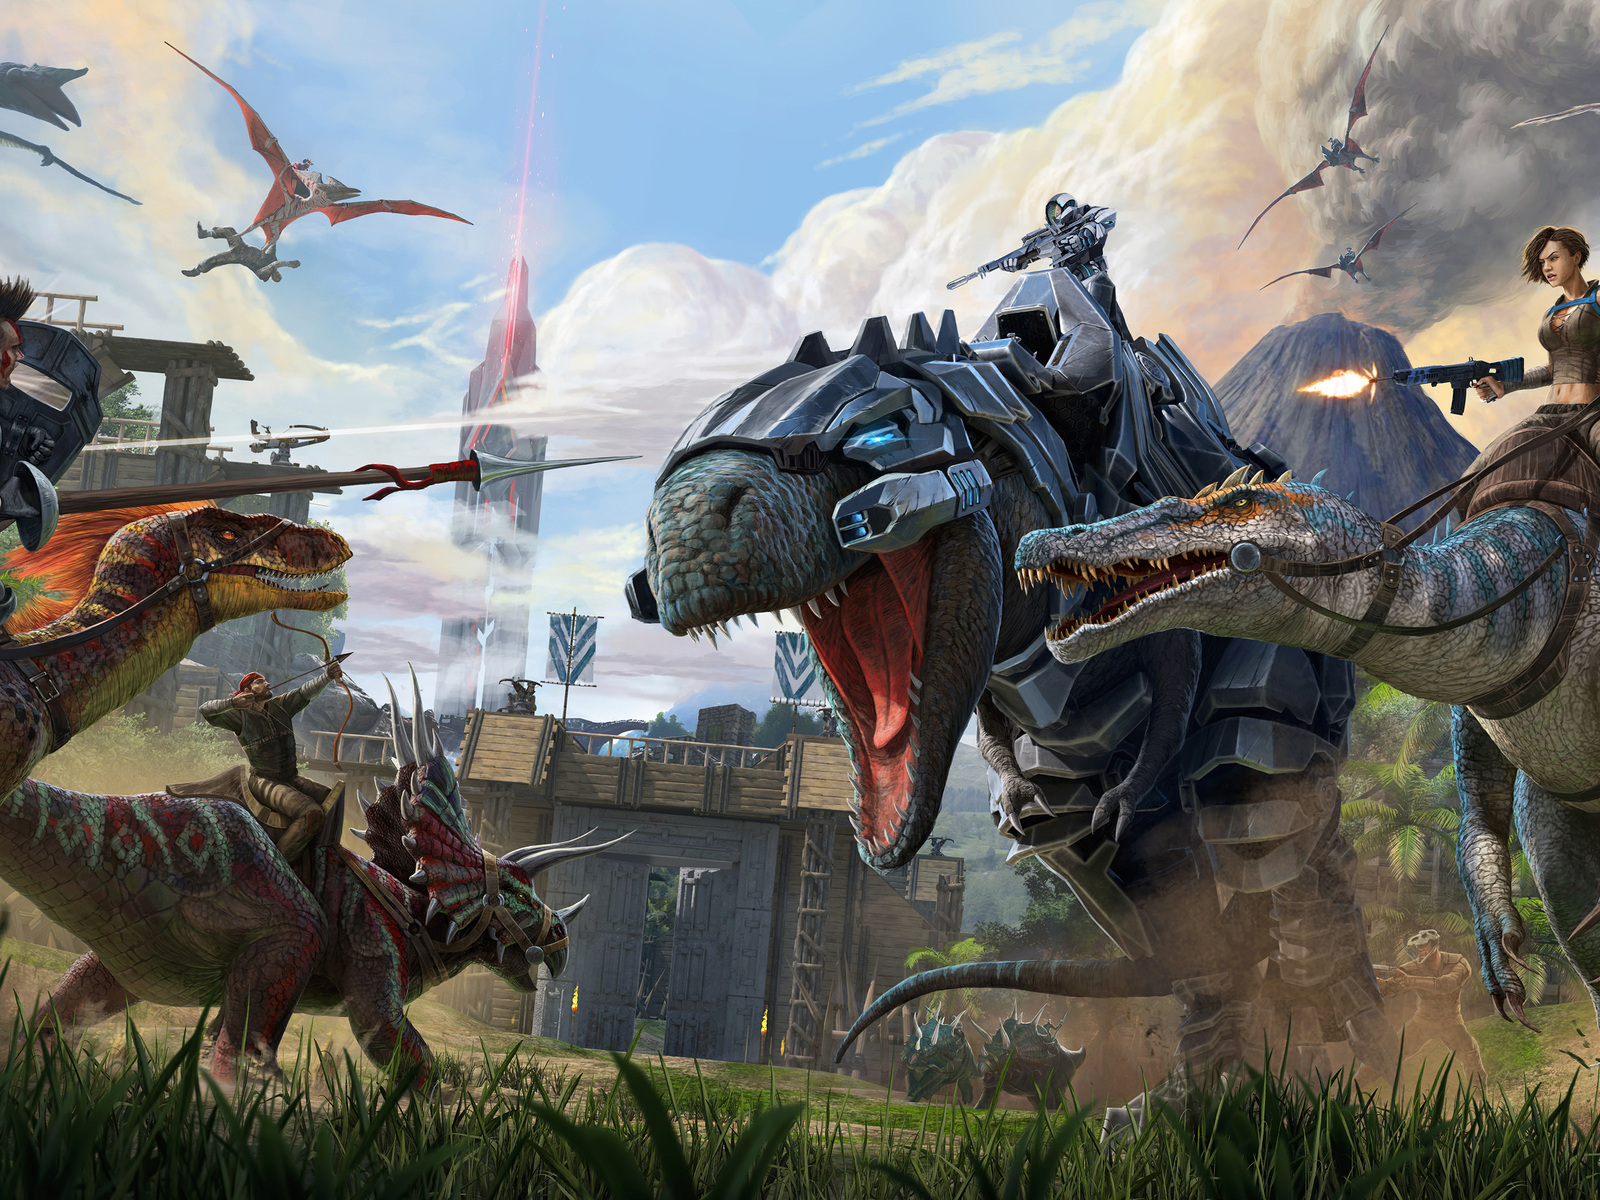 1600x1200 ARK Survival Evolved 1600x1200 Resolution HD 4k Wallpapers, Images, Backgrounds